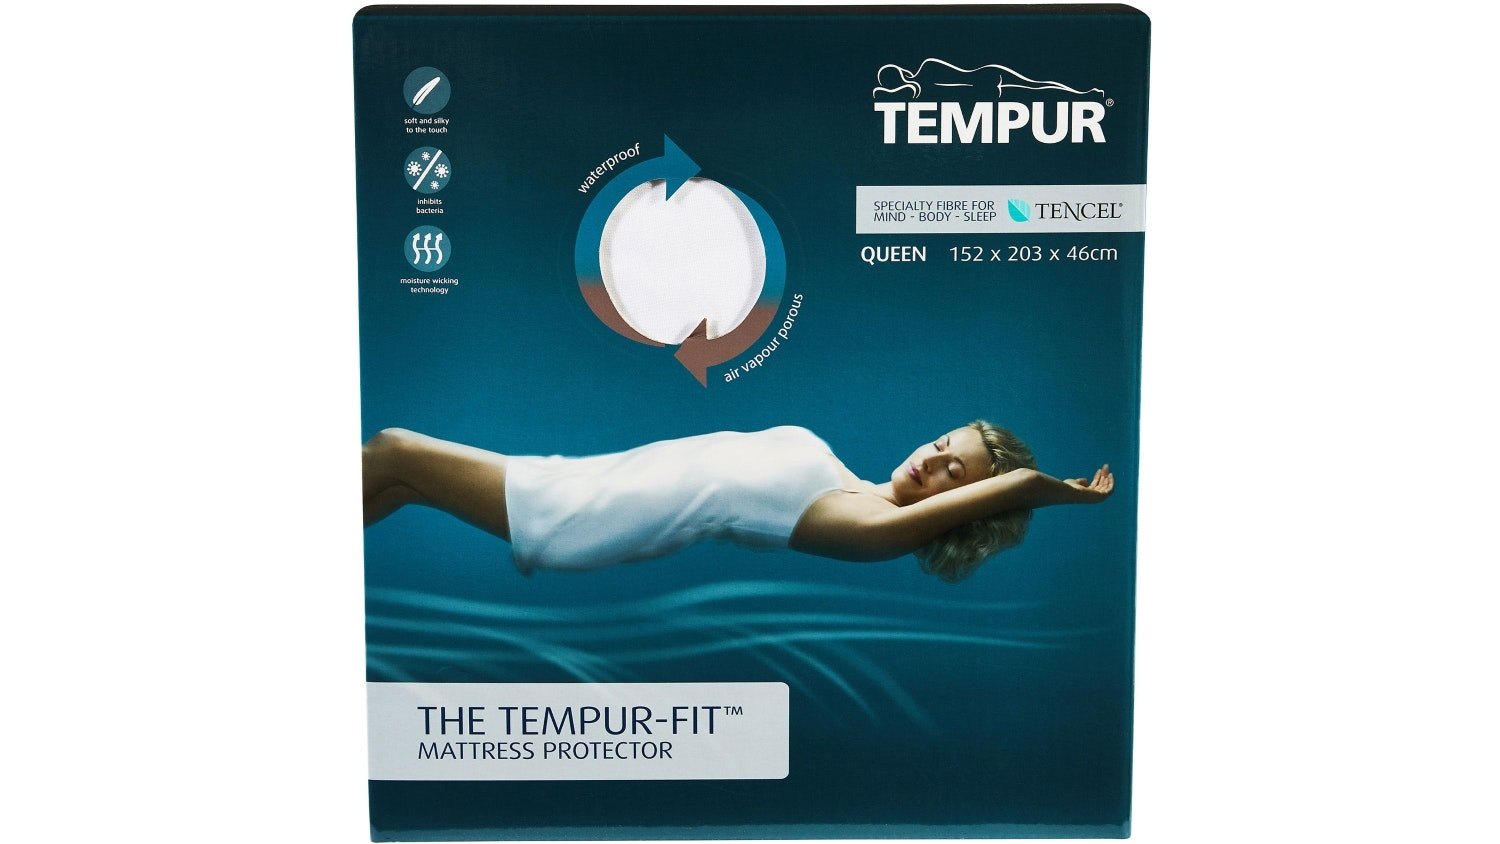 Tempur Fit Mattress Protector